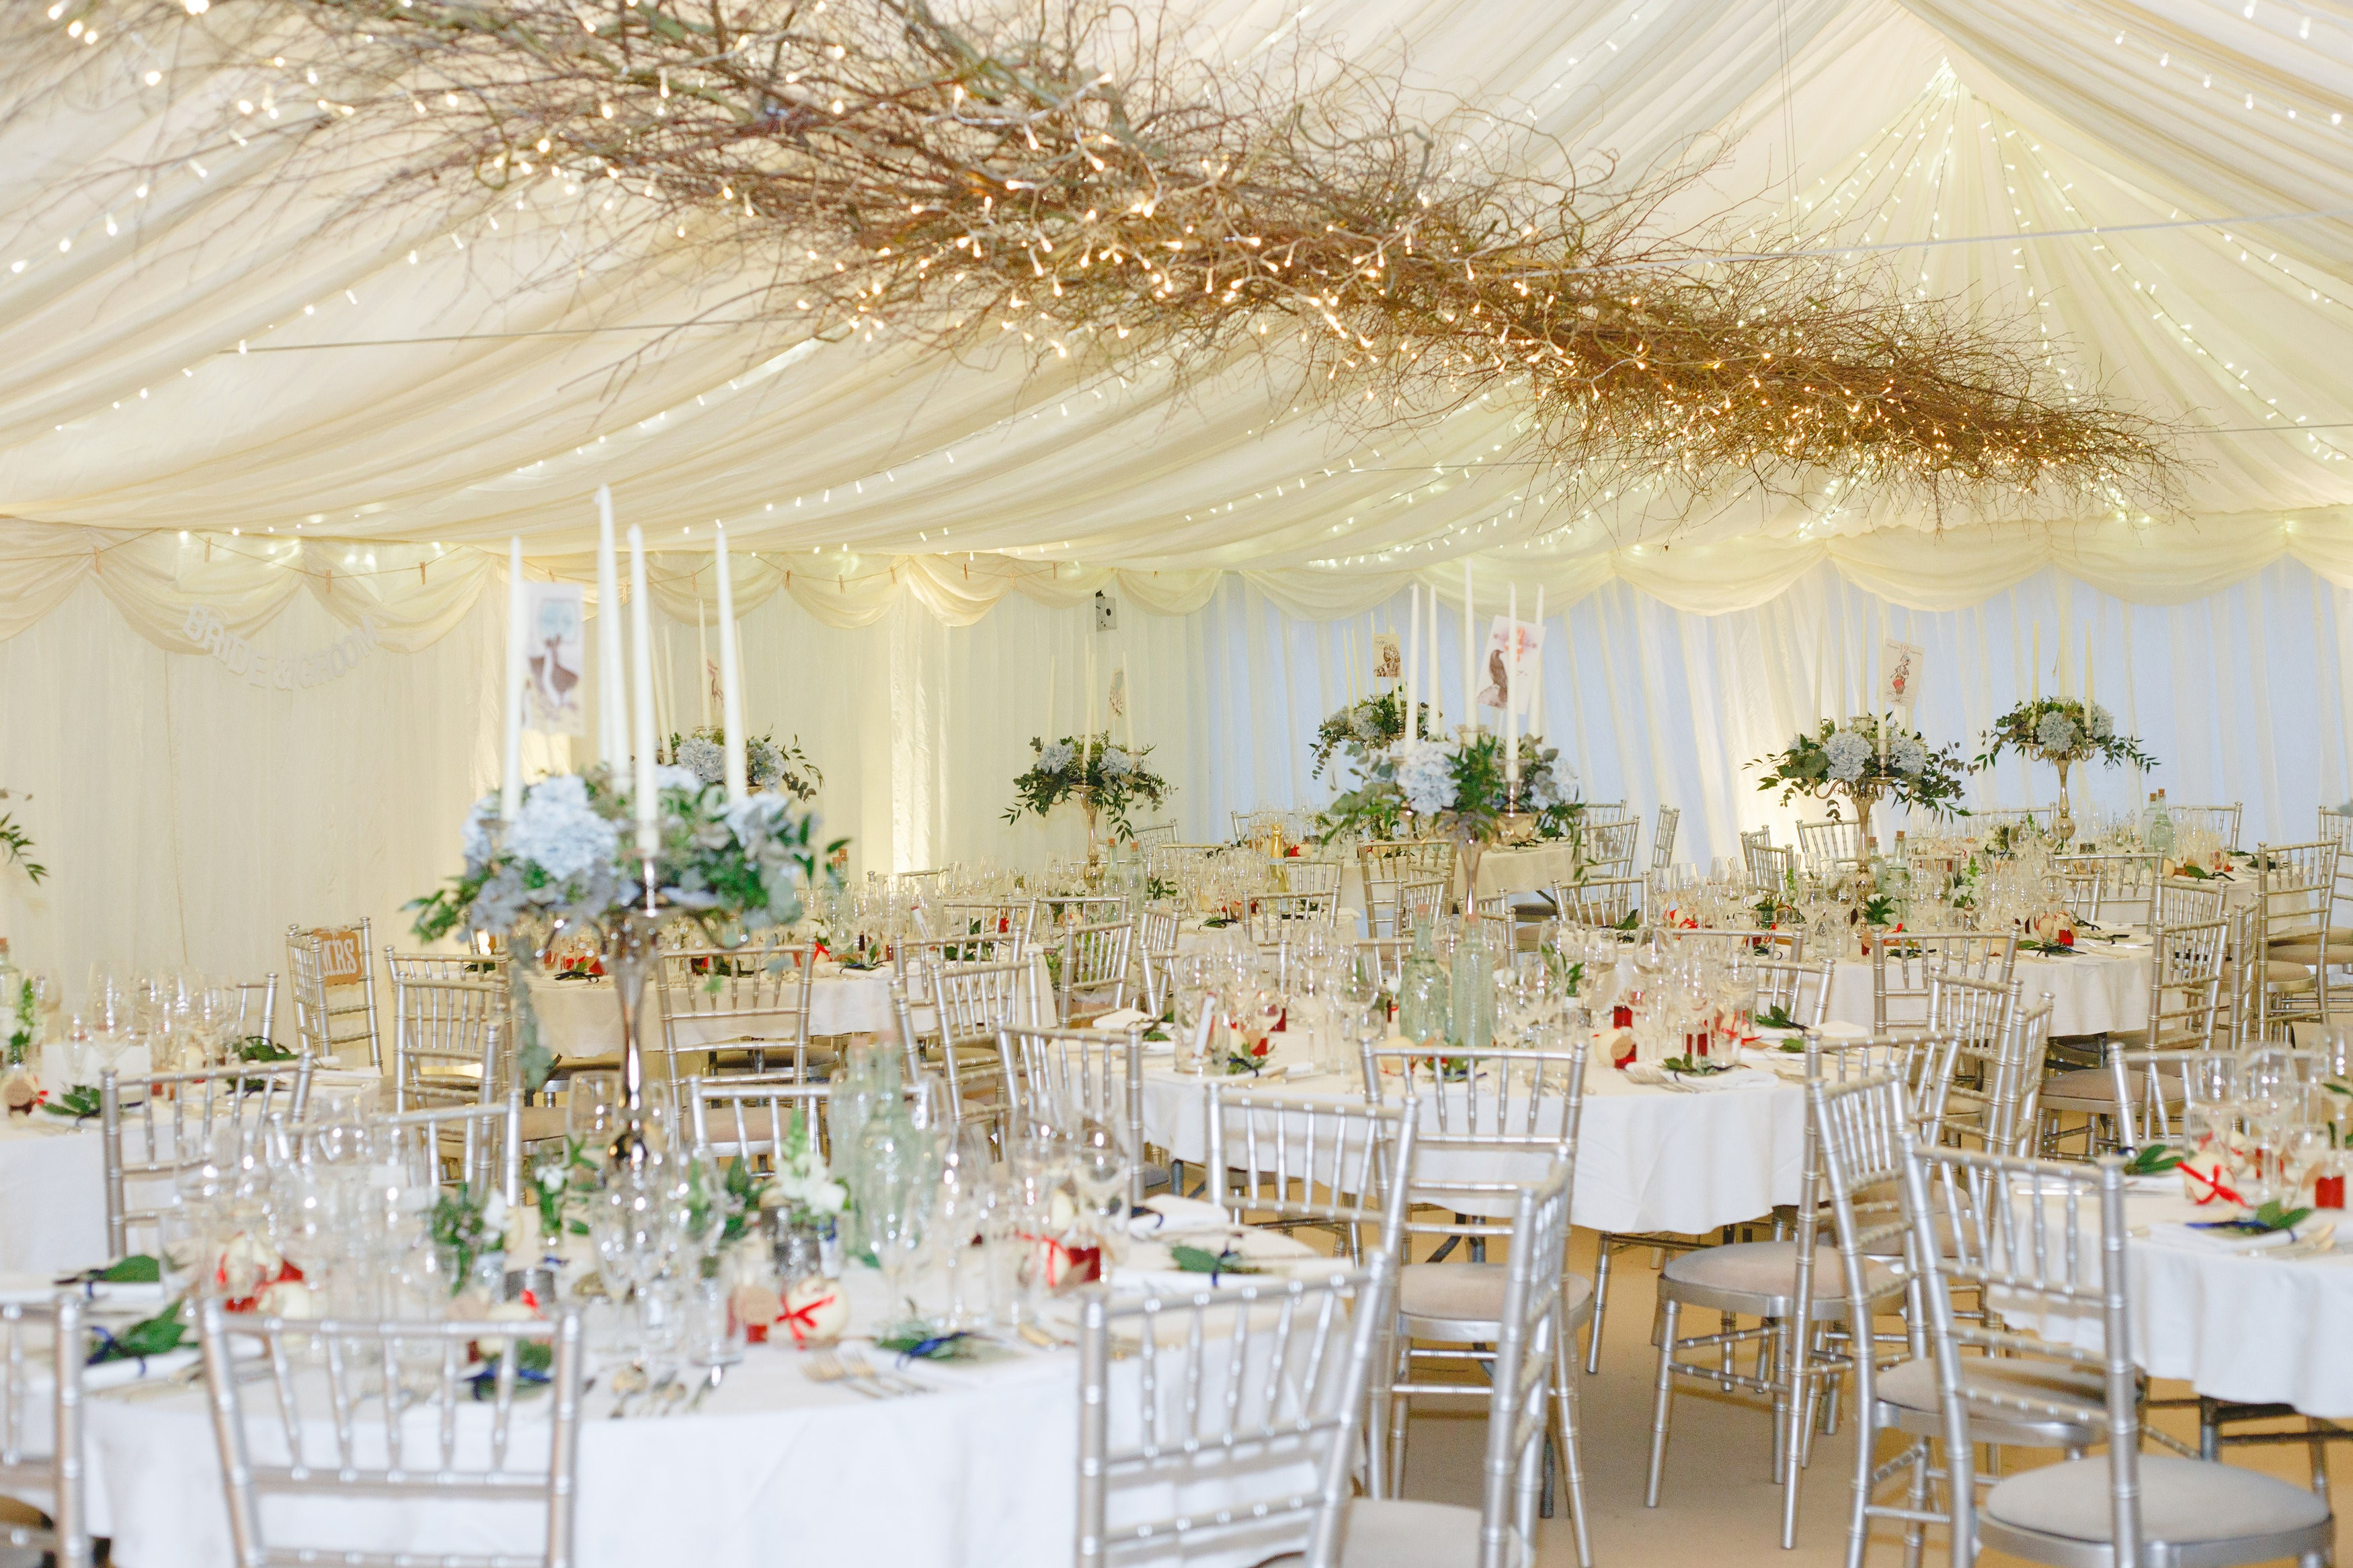 New wedding reception decorations gold coast wedding wedding reception marquee wedding decoration ideas junglespirit Choice Image